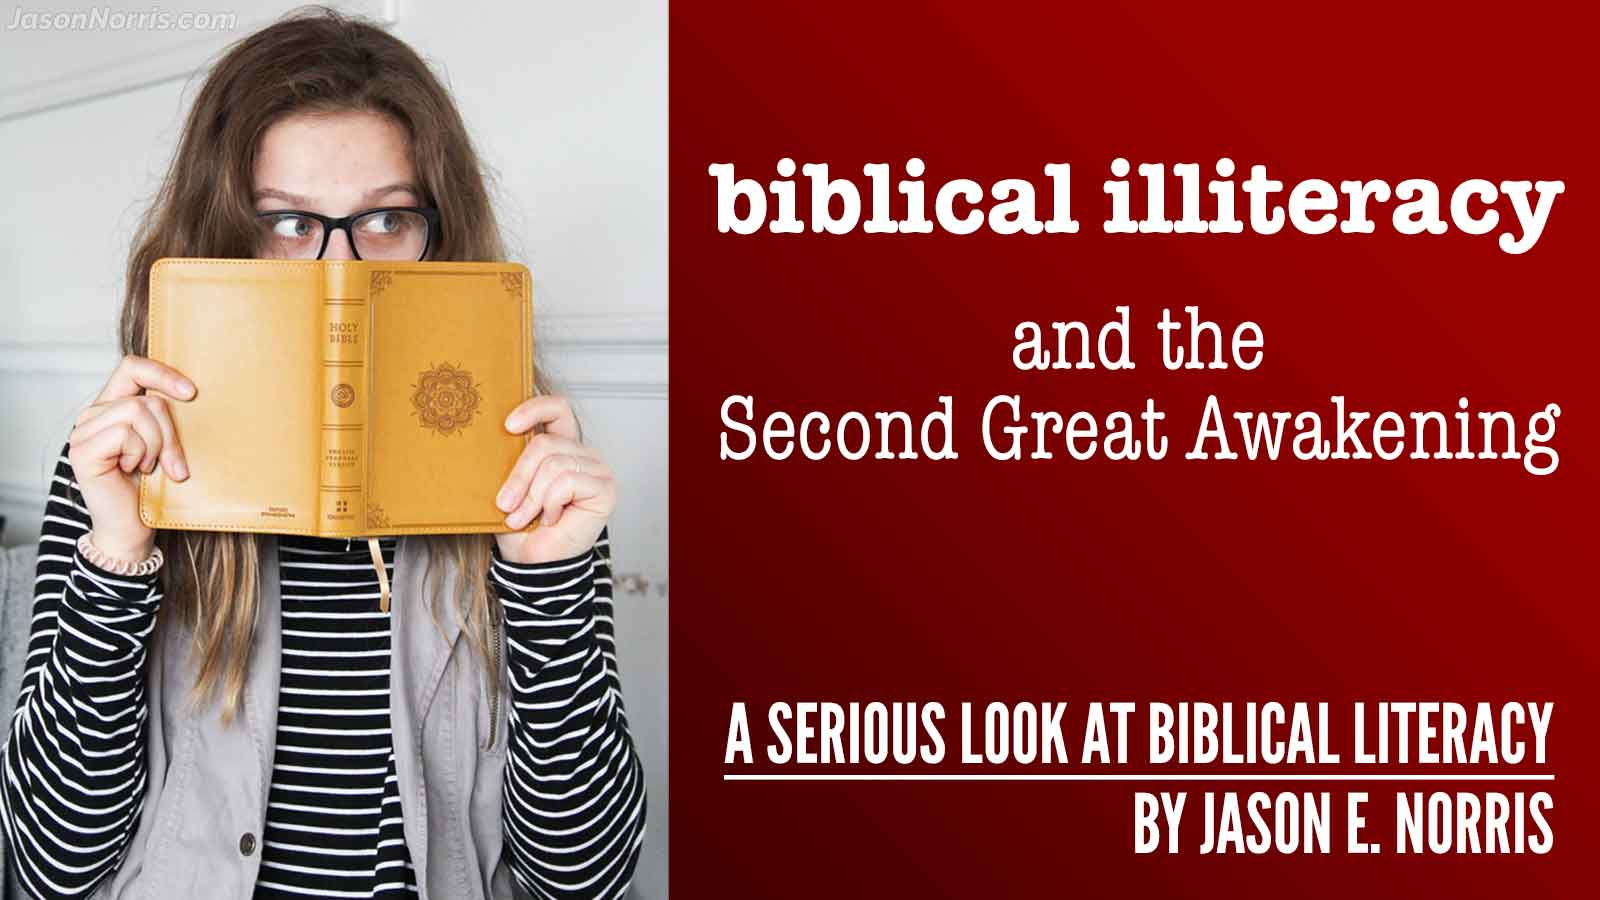 Biblical illiteracy and the Second Great Awakening by Jason E. Norris